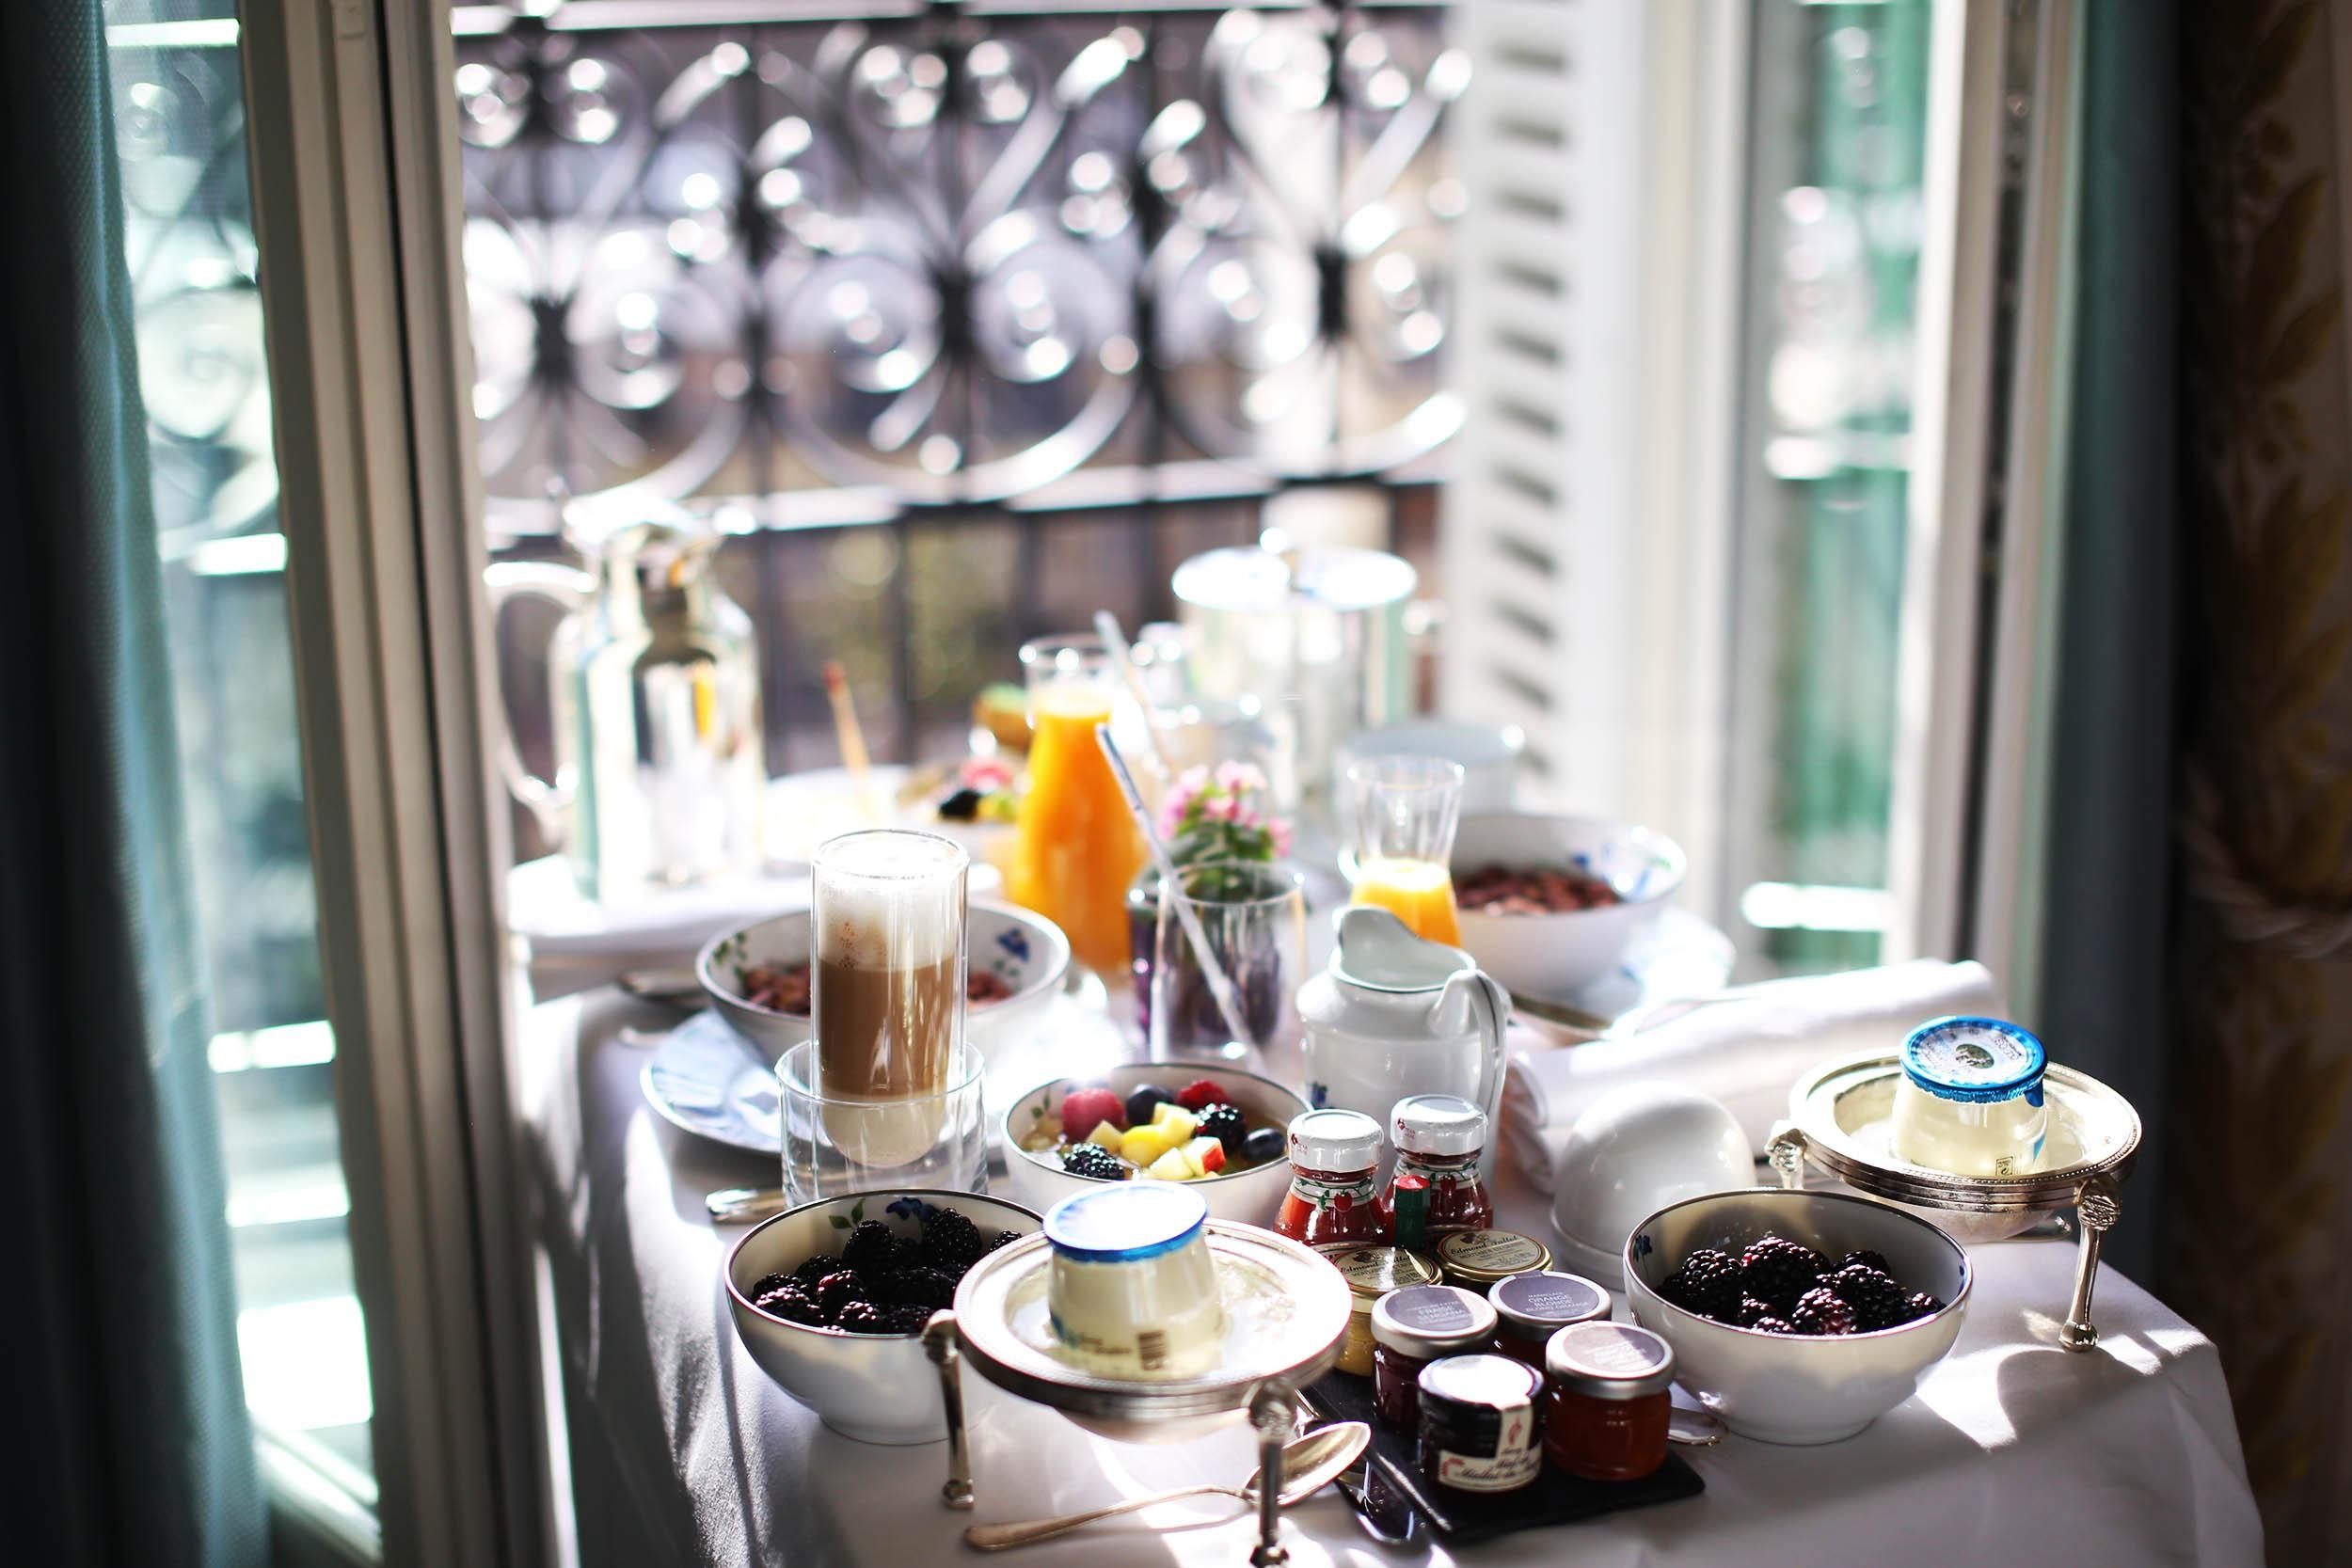 Breakfast ready! Happy Monday! 